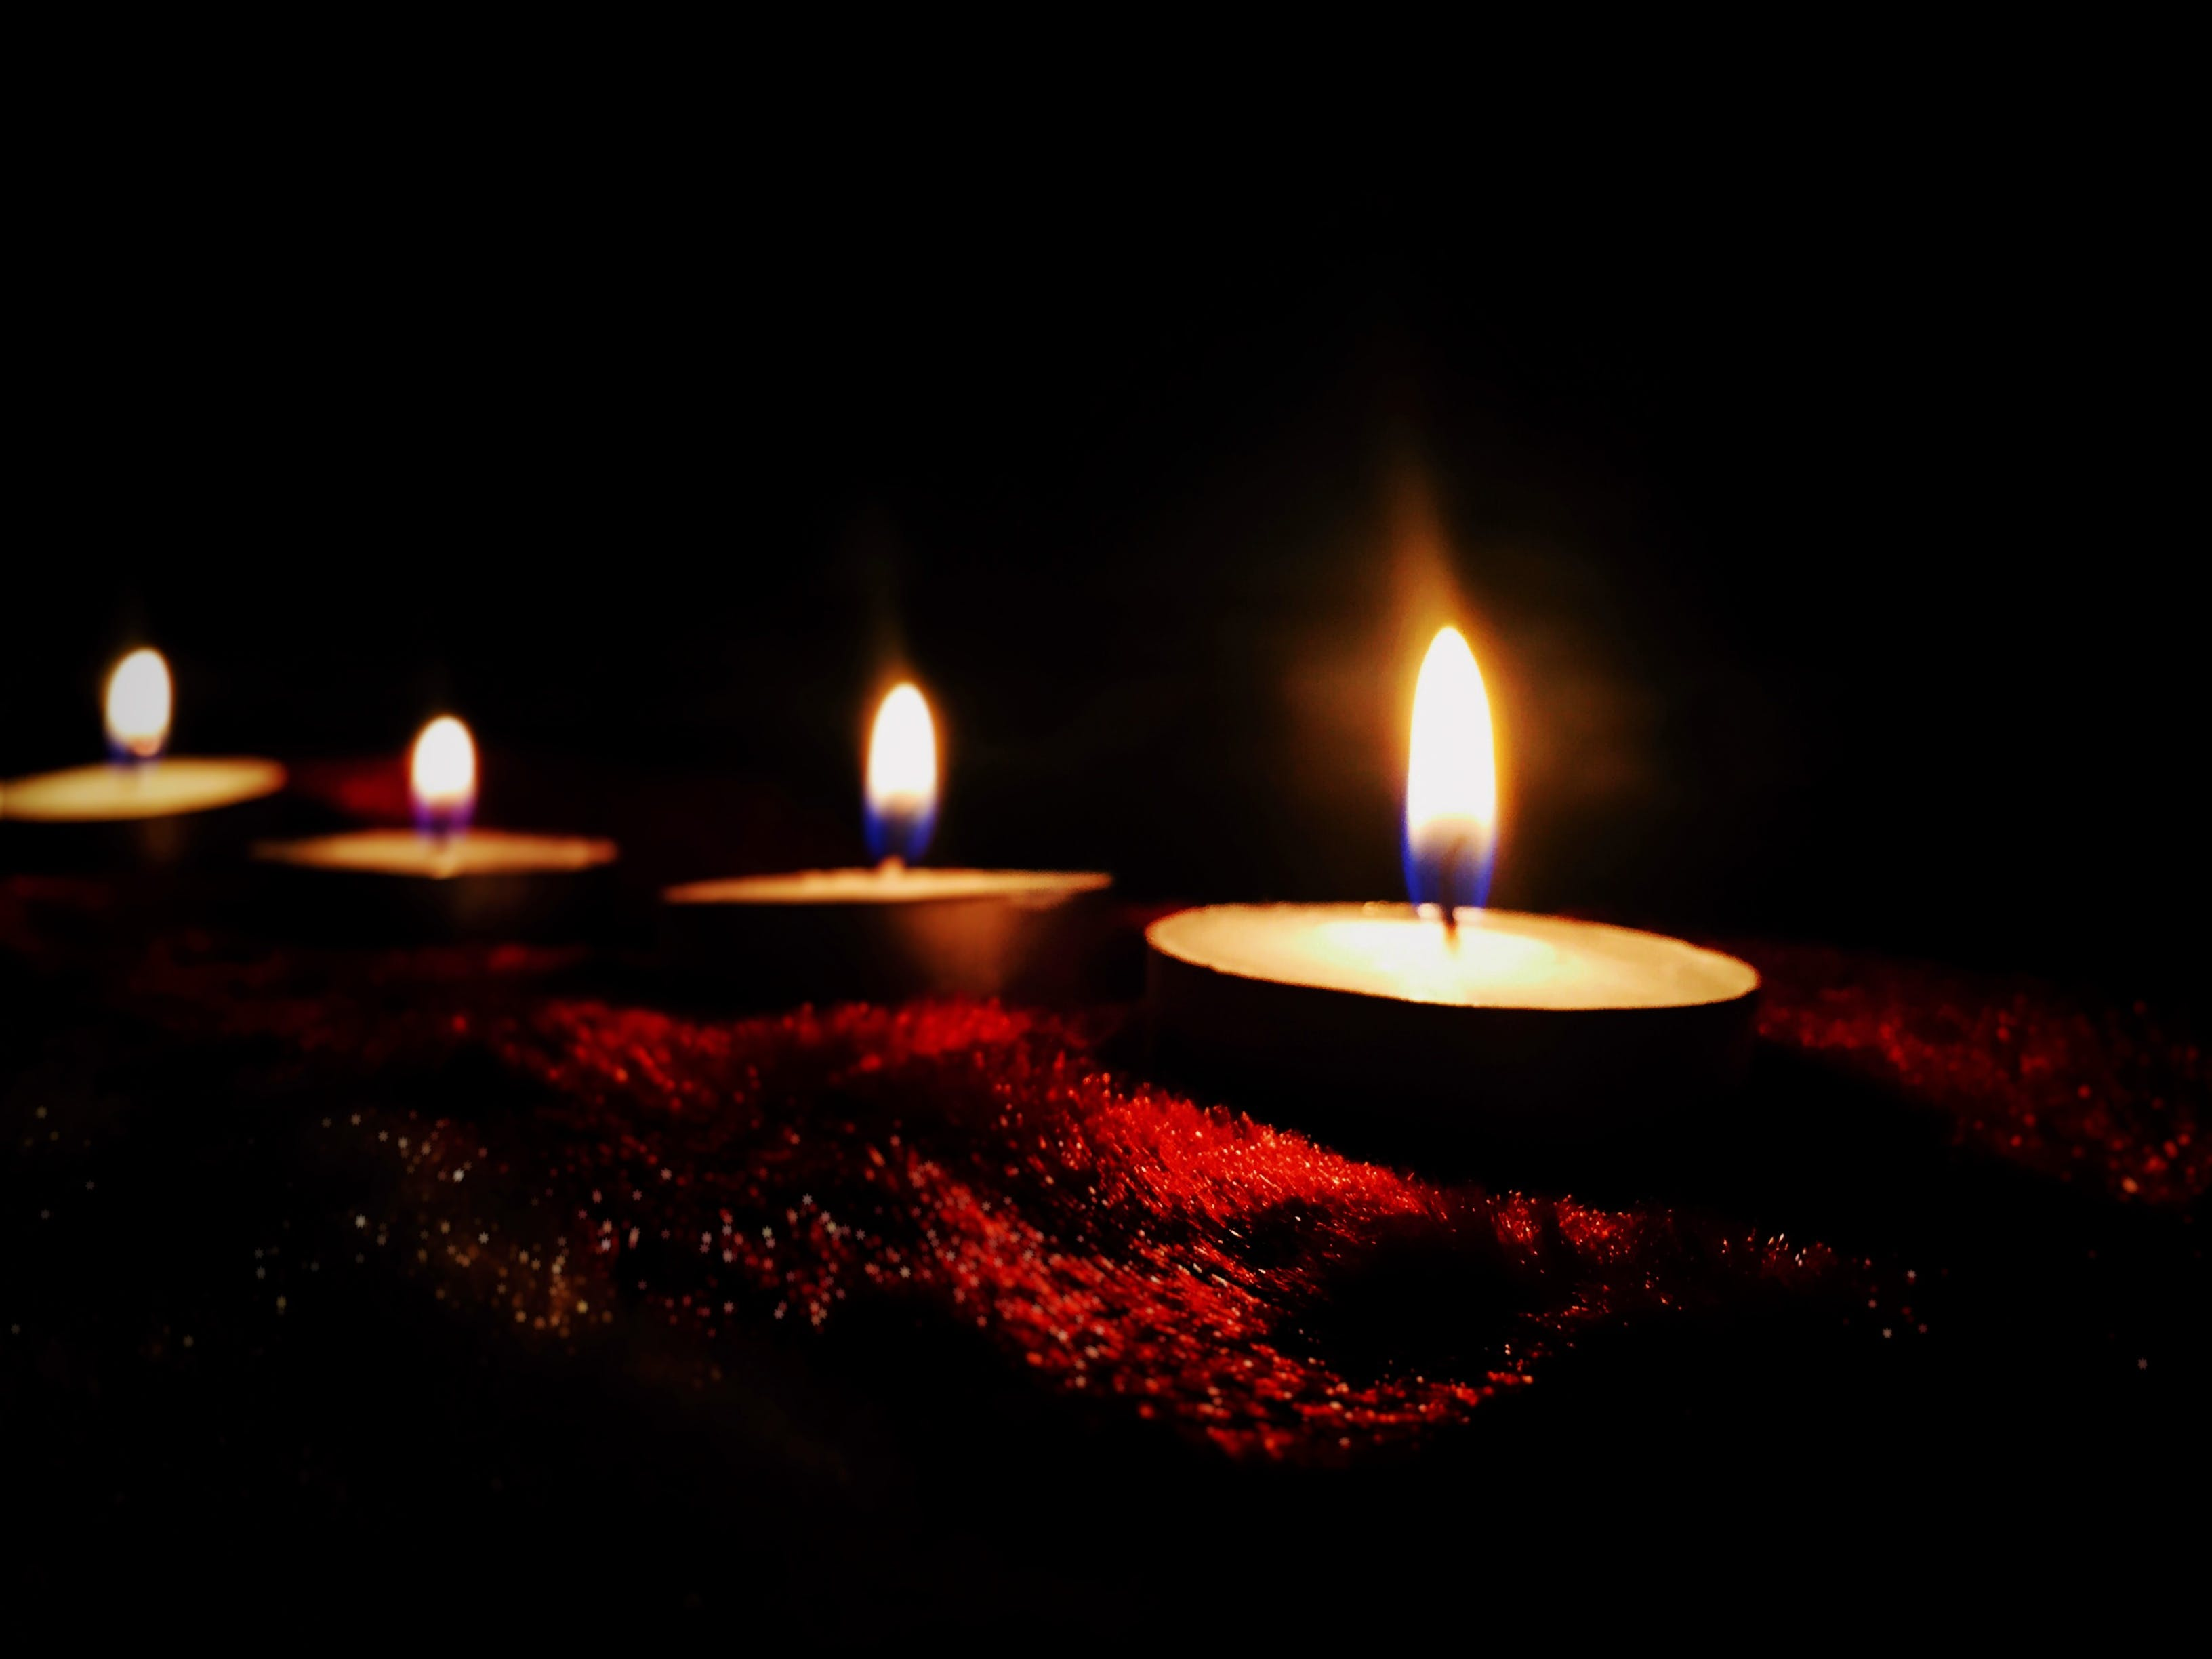 Four Lighted Candles